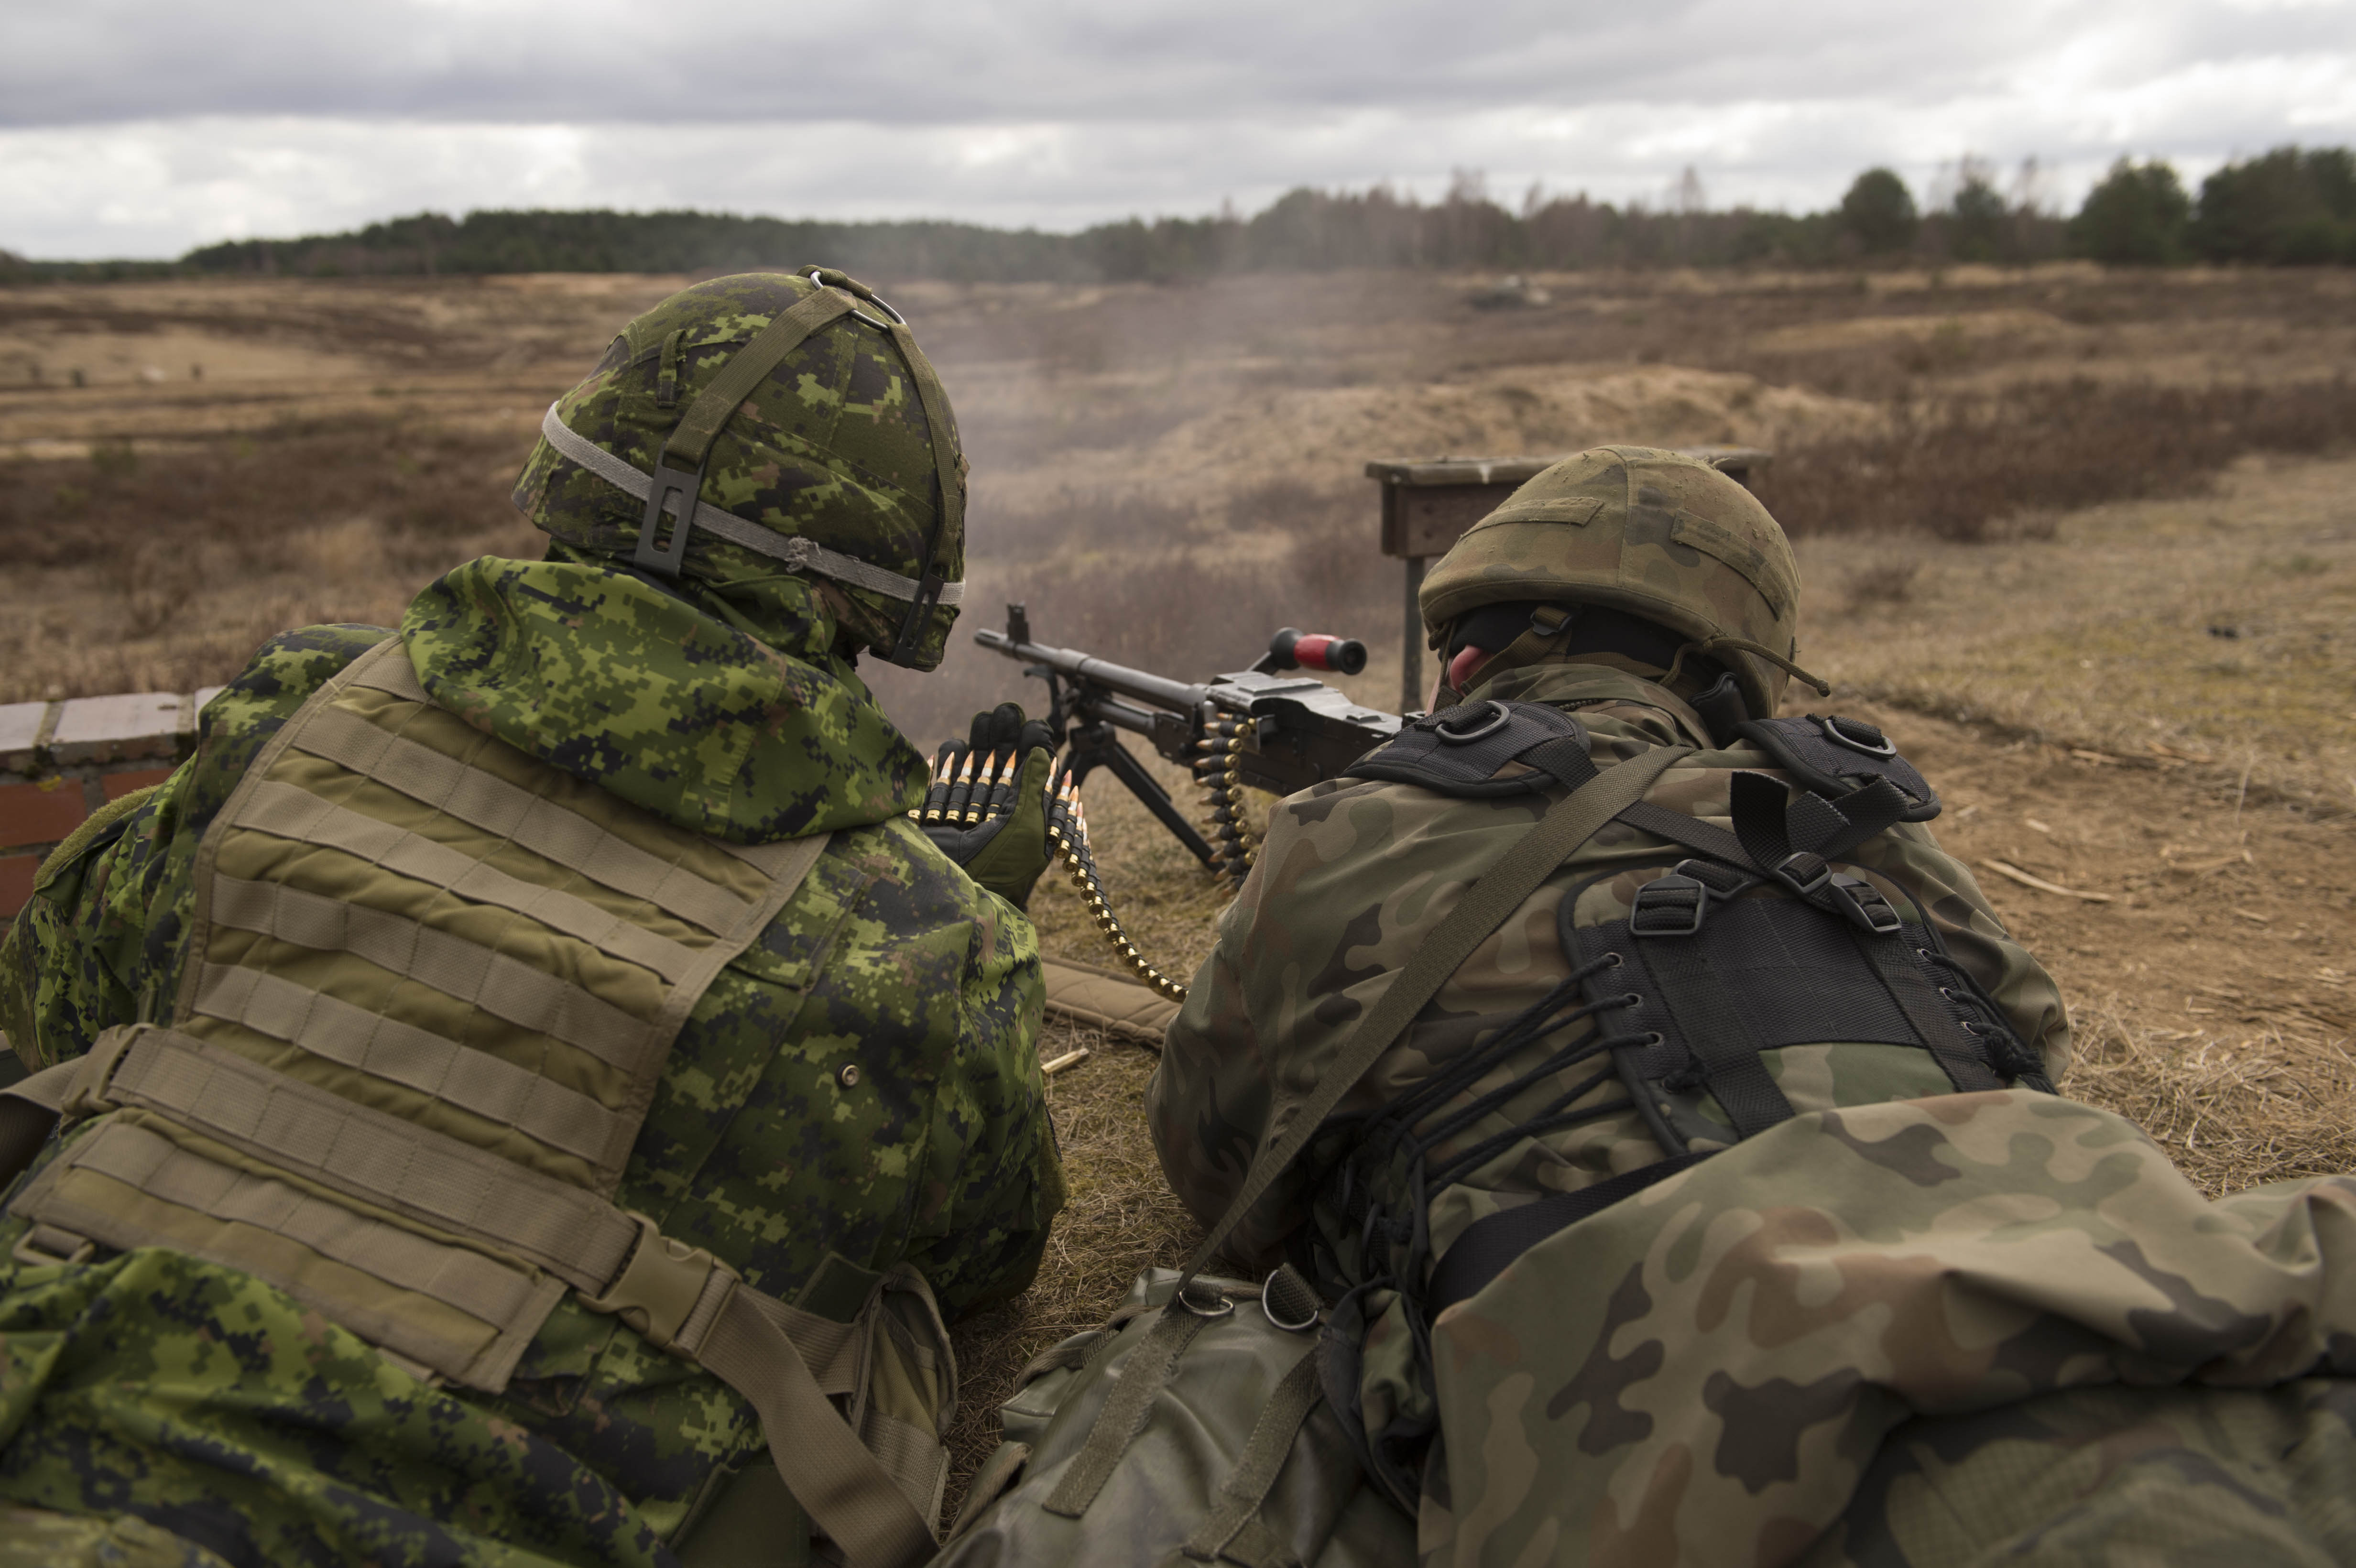 Two soldiers lie side by side on the ground and fire a machine gun